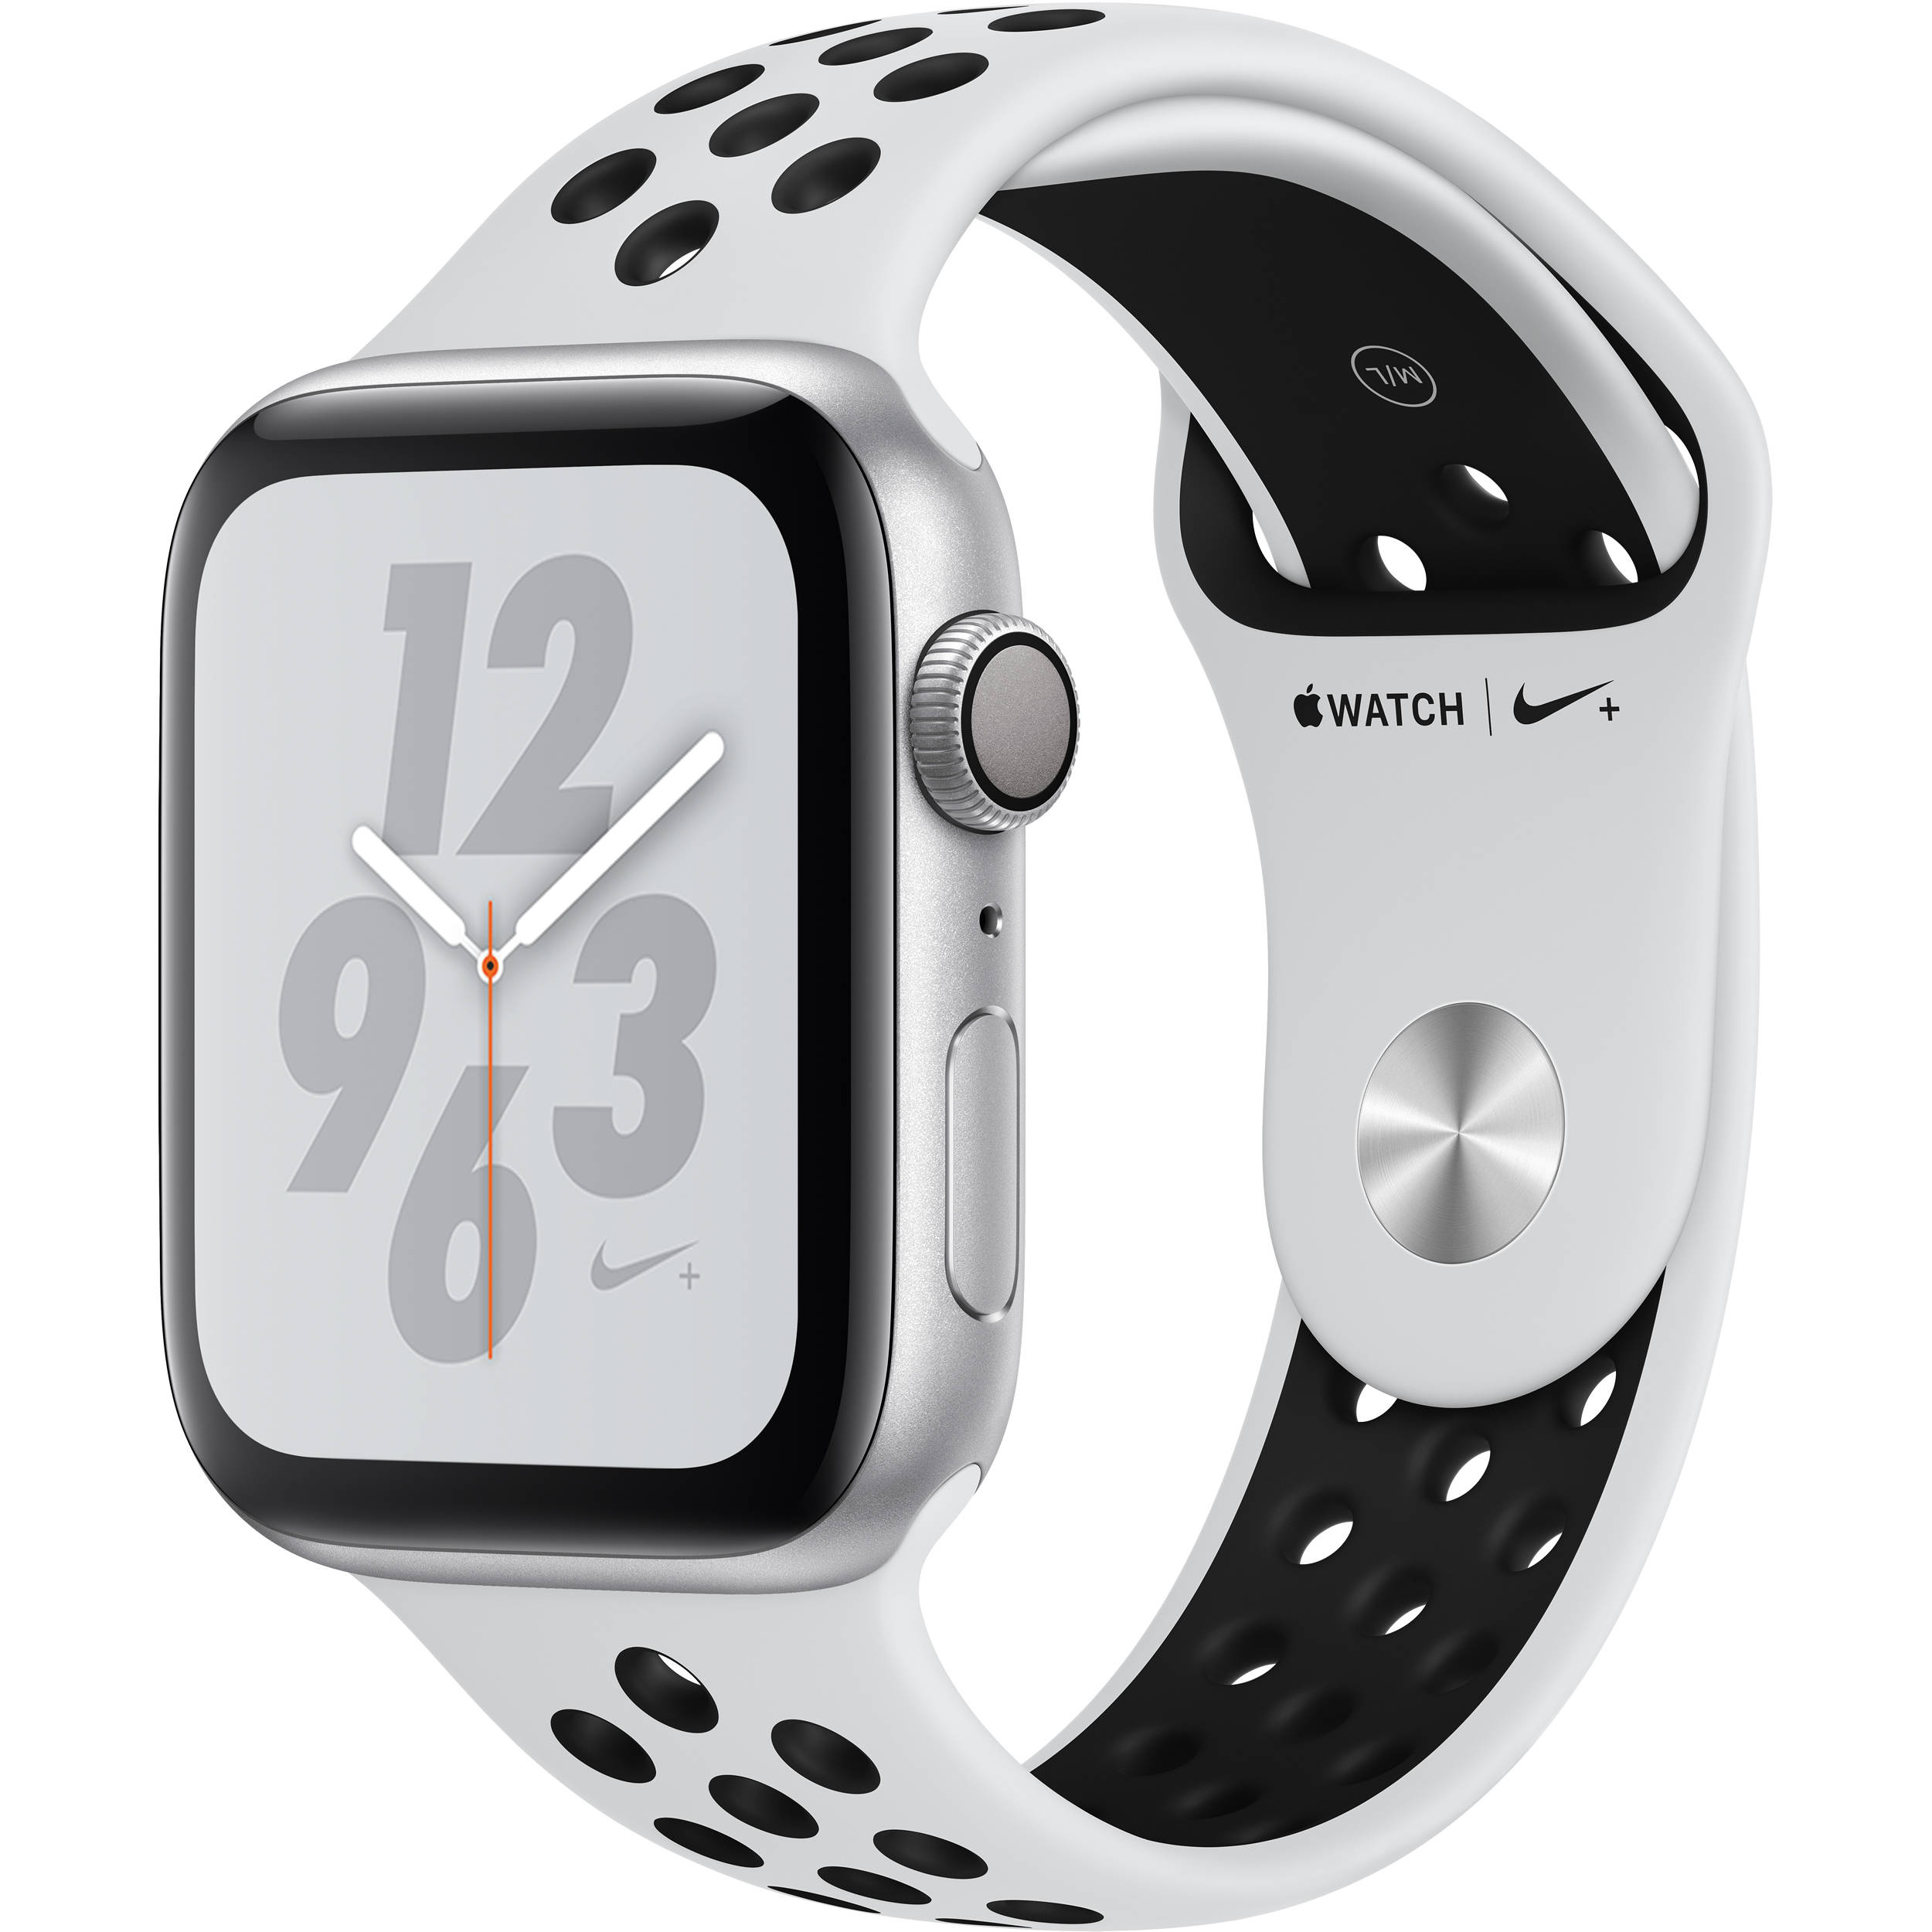 627c0e3e60d Apple Watch Nike+ Series 4 MU6K2LL A B H Photo Video